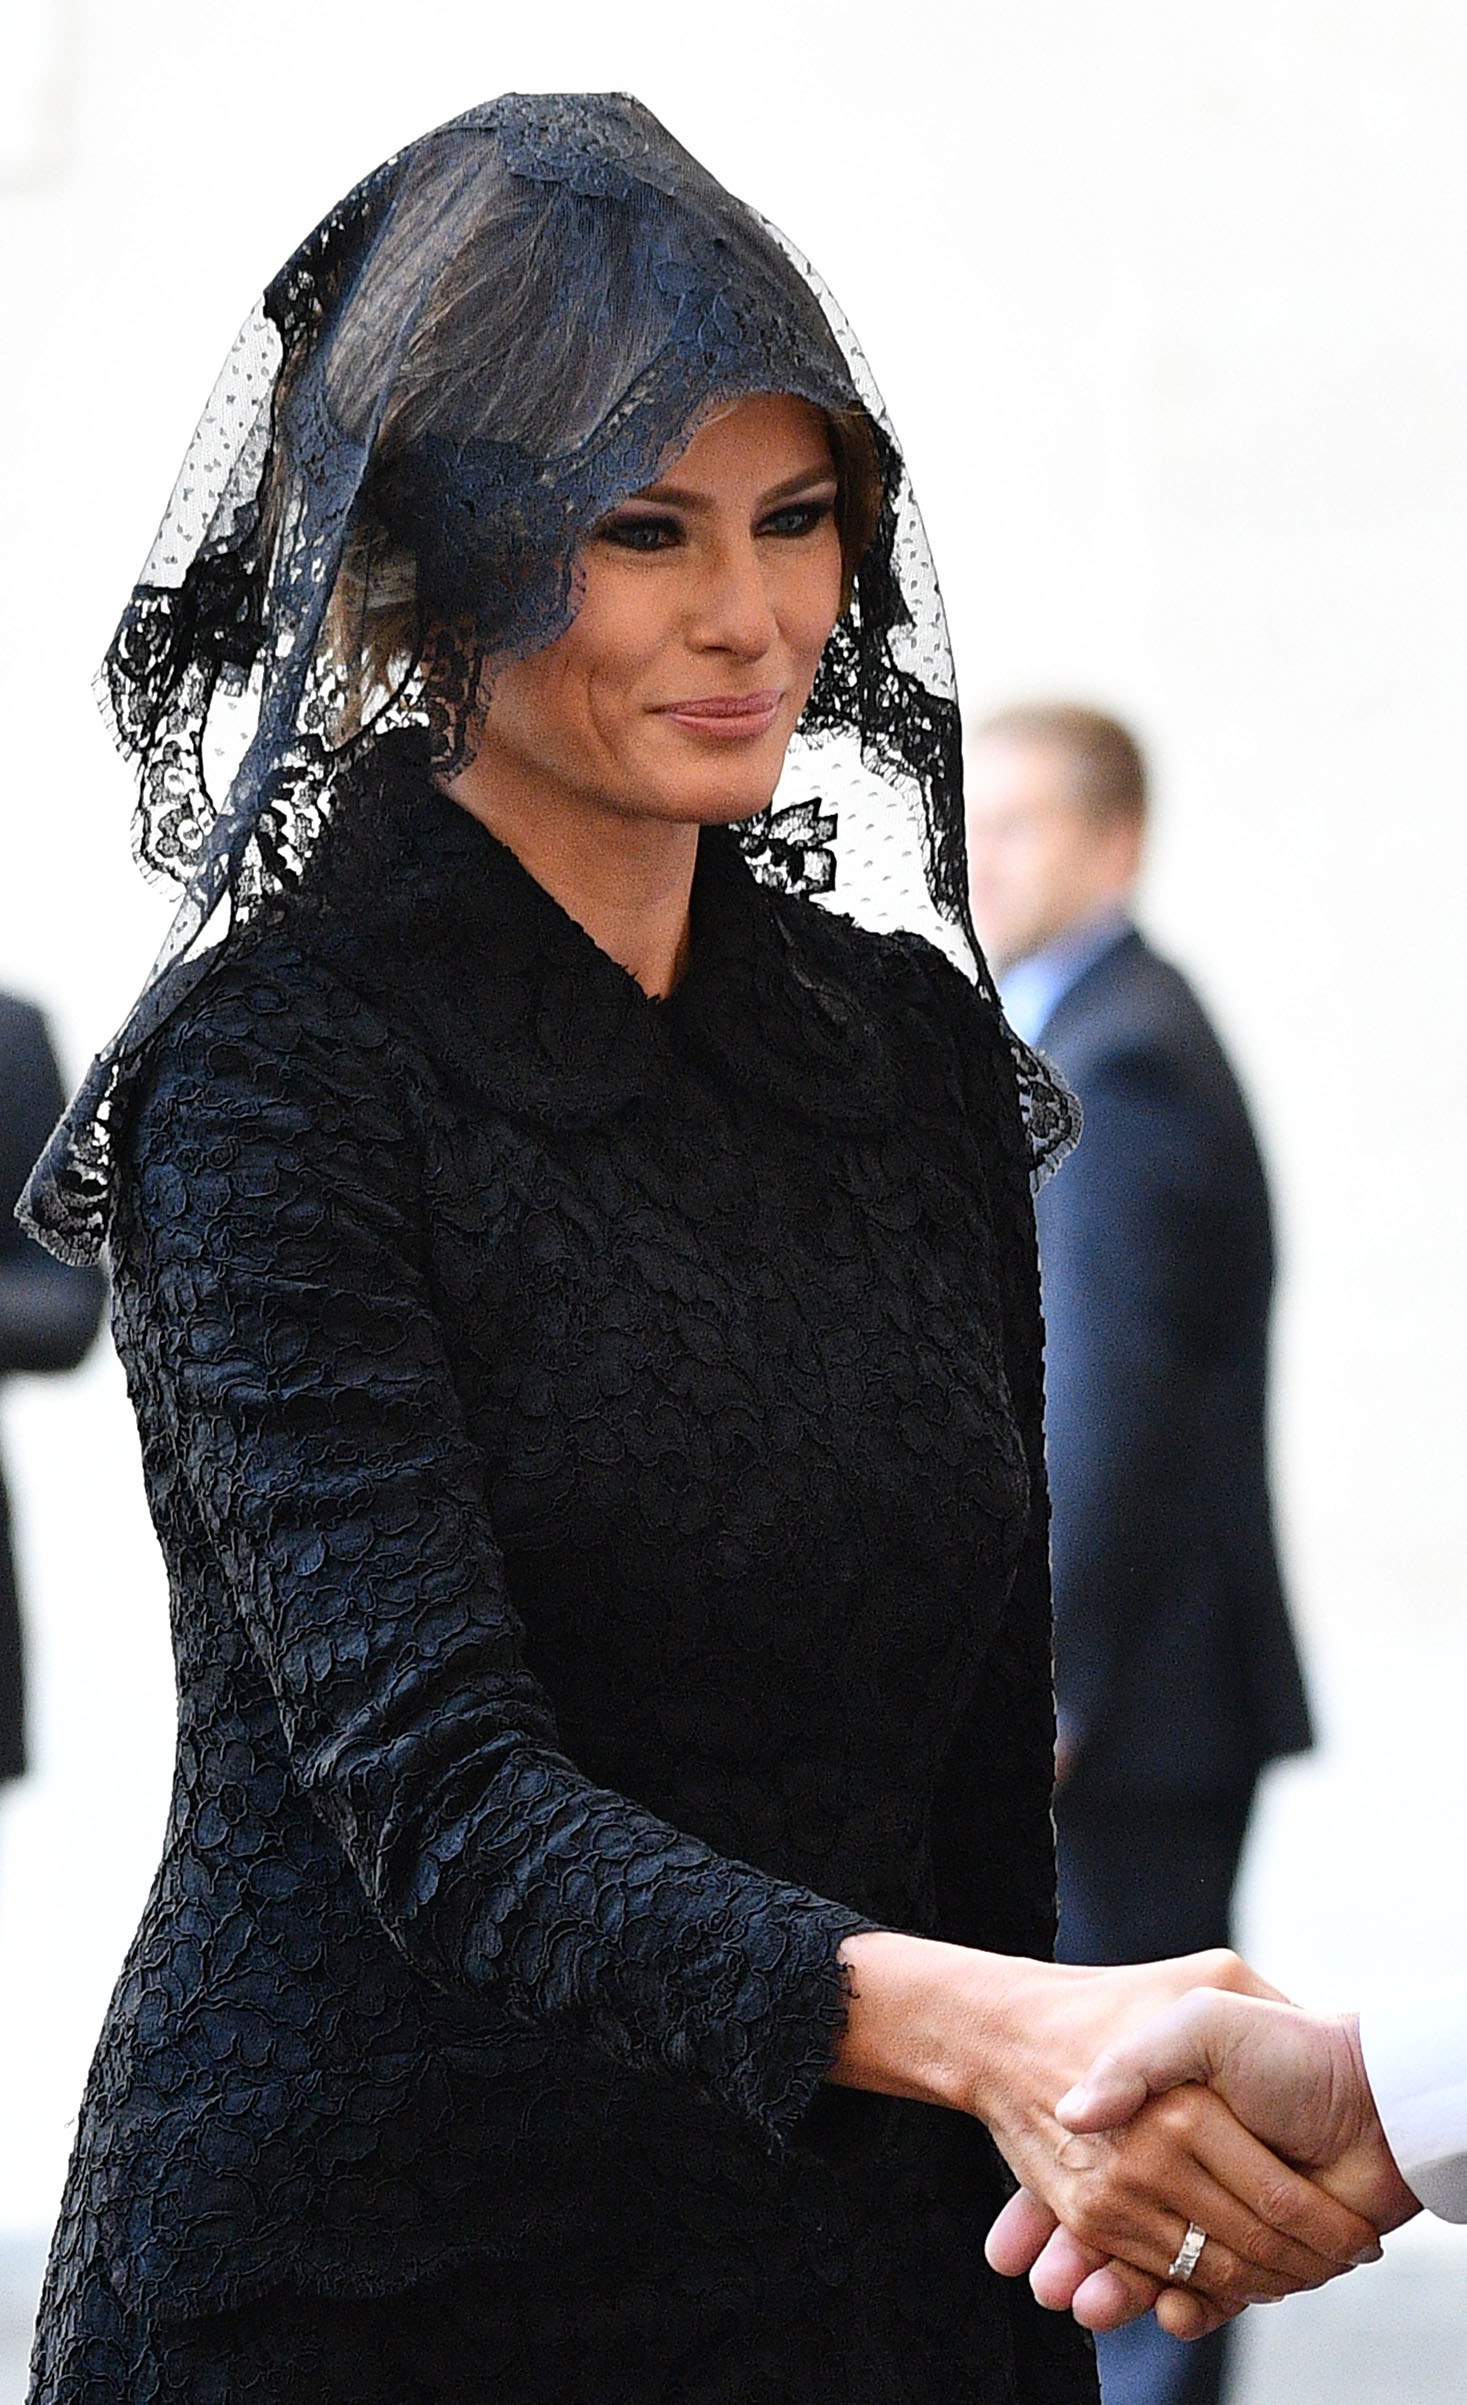 First lady Melania Trump wearing a lace Dolce & Gabbana outfit, arrives at the Vatican prior a private audience of US President Donald Trump with Pope Francis, on May 24, 2017.